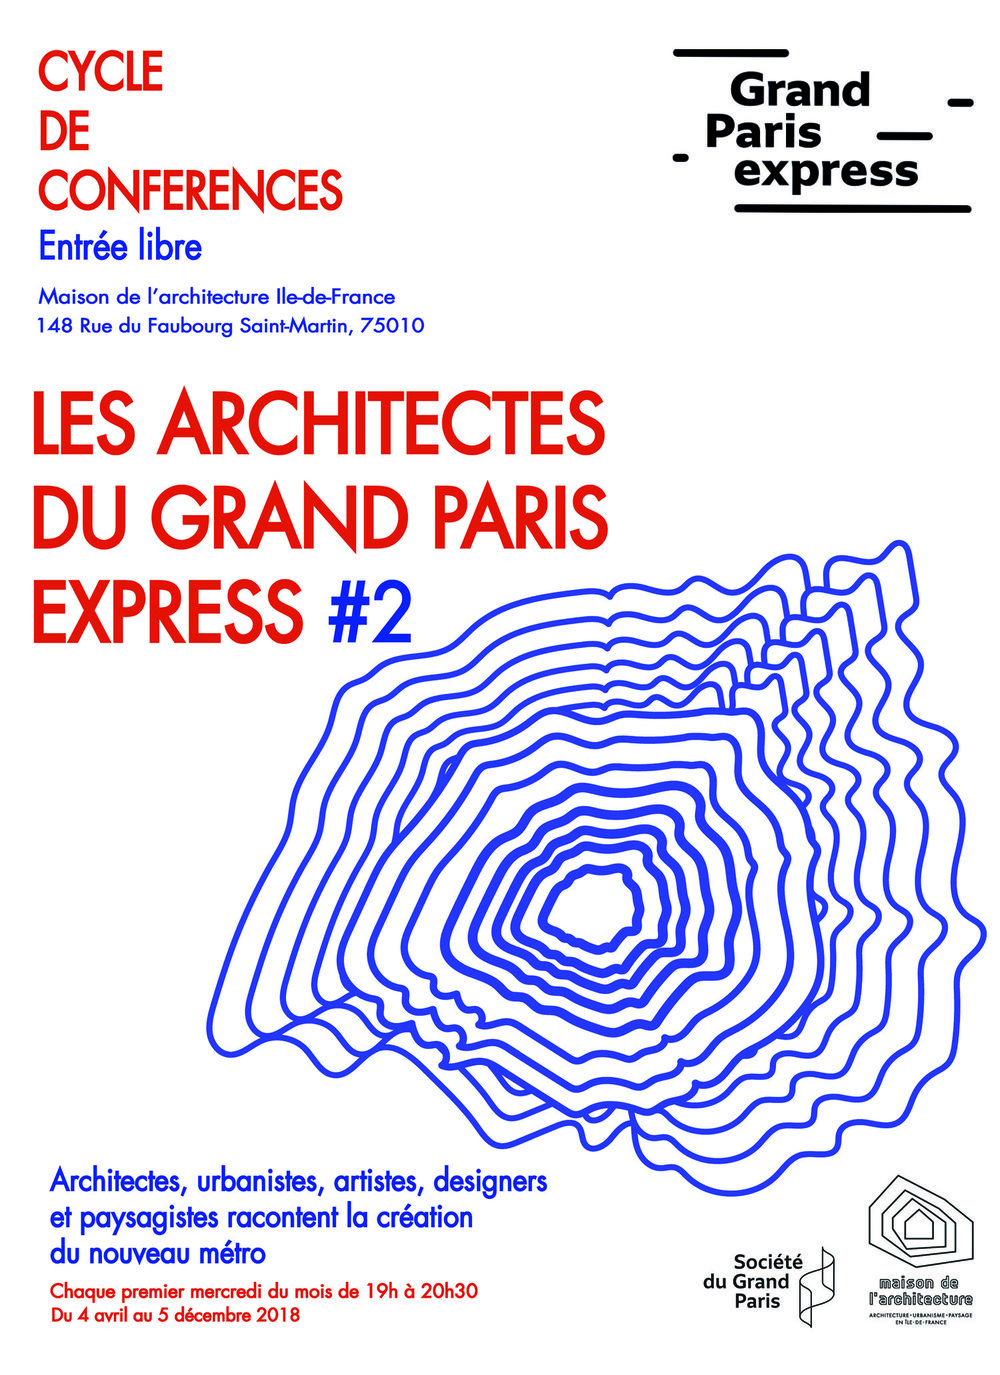 architectes-grand-paris-express.jpg